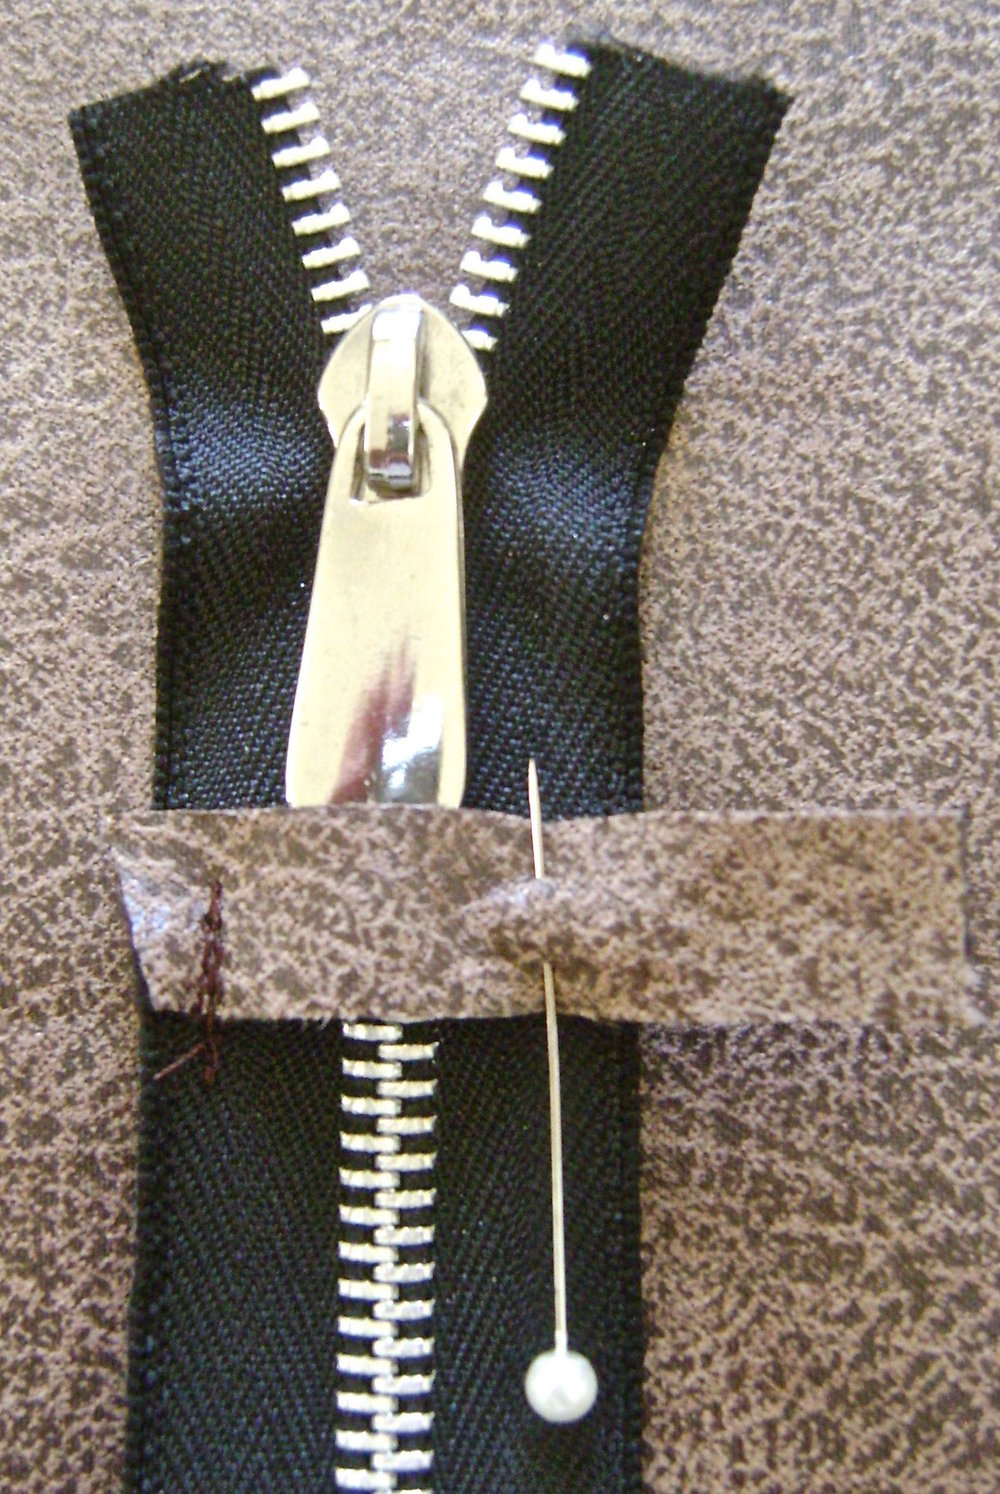 "step 8 - Pin the other stop side to the zipper and slip the decorative pull under the stop.  Move the pull down partially opening to get it on the other side of the stop.  Sew the pinned stop to the zipper.  Trim the zipper ends about .25"" inside the outer edges of the stops."